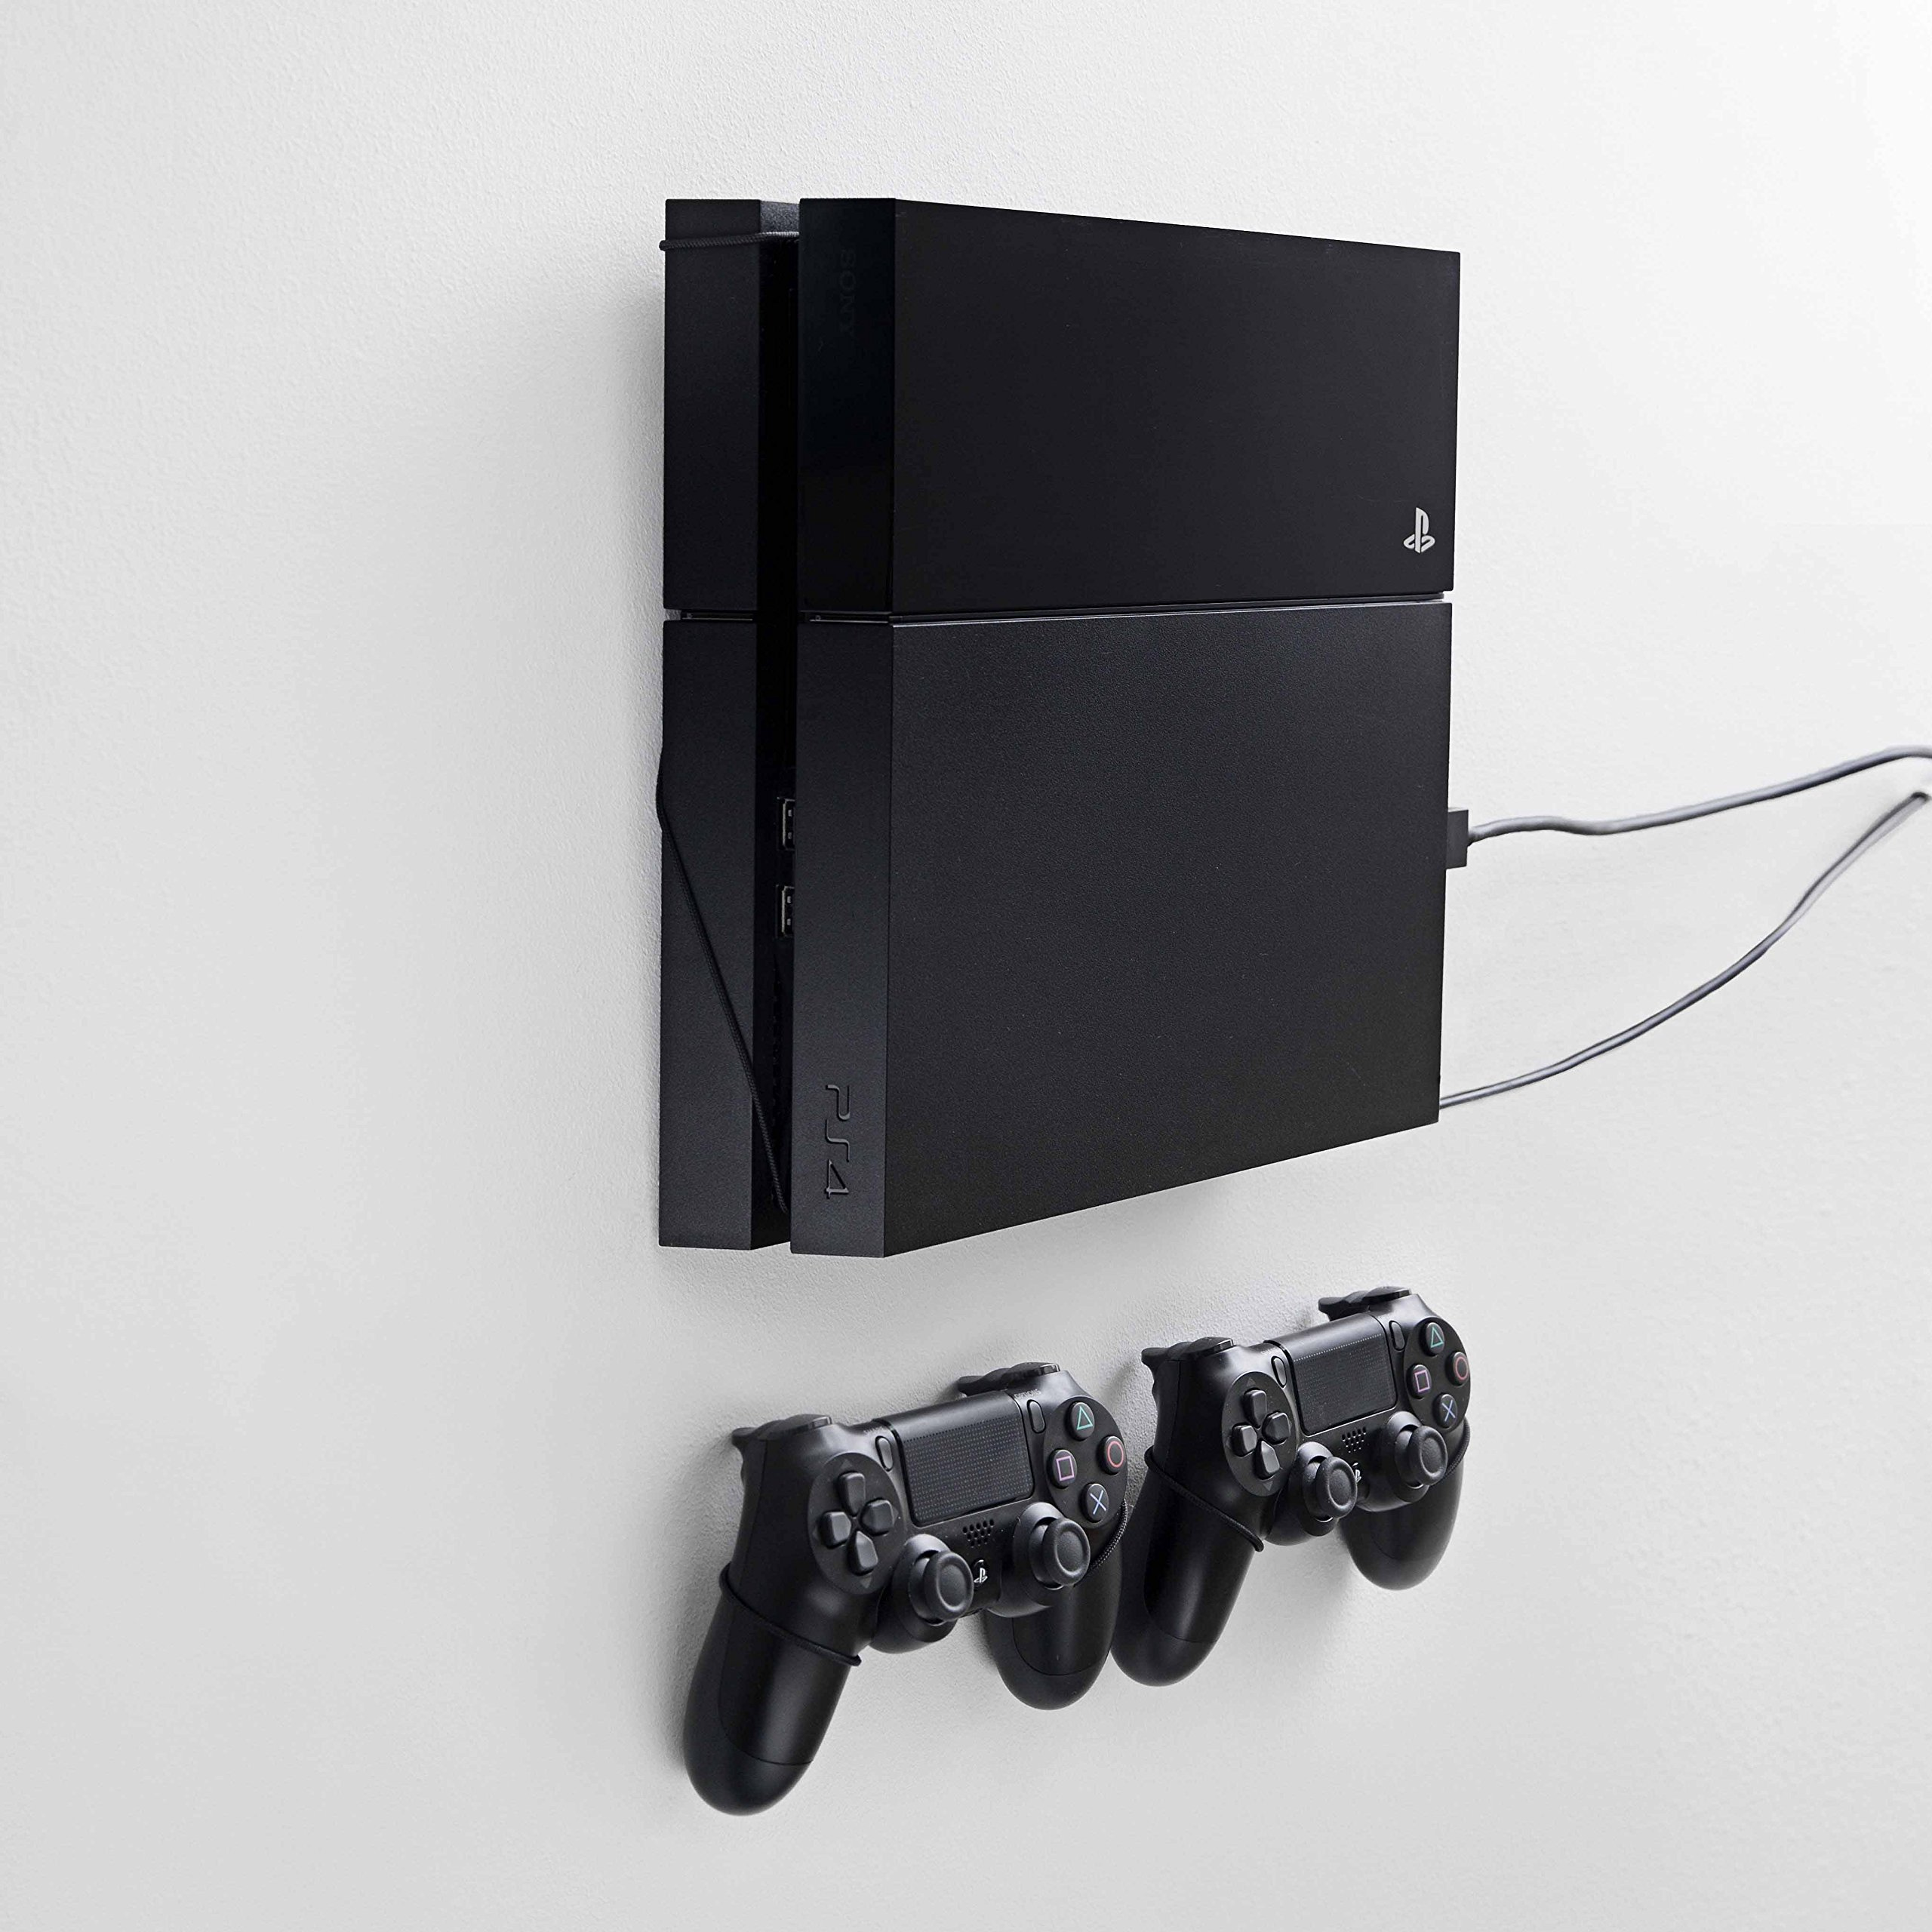 Wall mount for PS4 Original by FLOATING GRIP® - This package (BUNDLE) incl. mounts for 1x console and 2x controllers. Color: Black. Patent pending and proprietary design by FLOATING GRIP® by FLOATING GRIP®